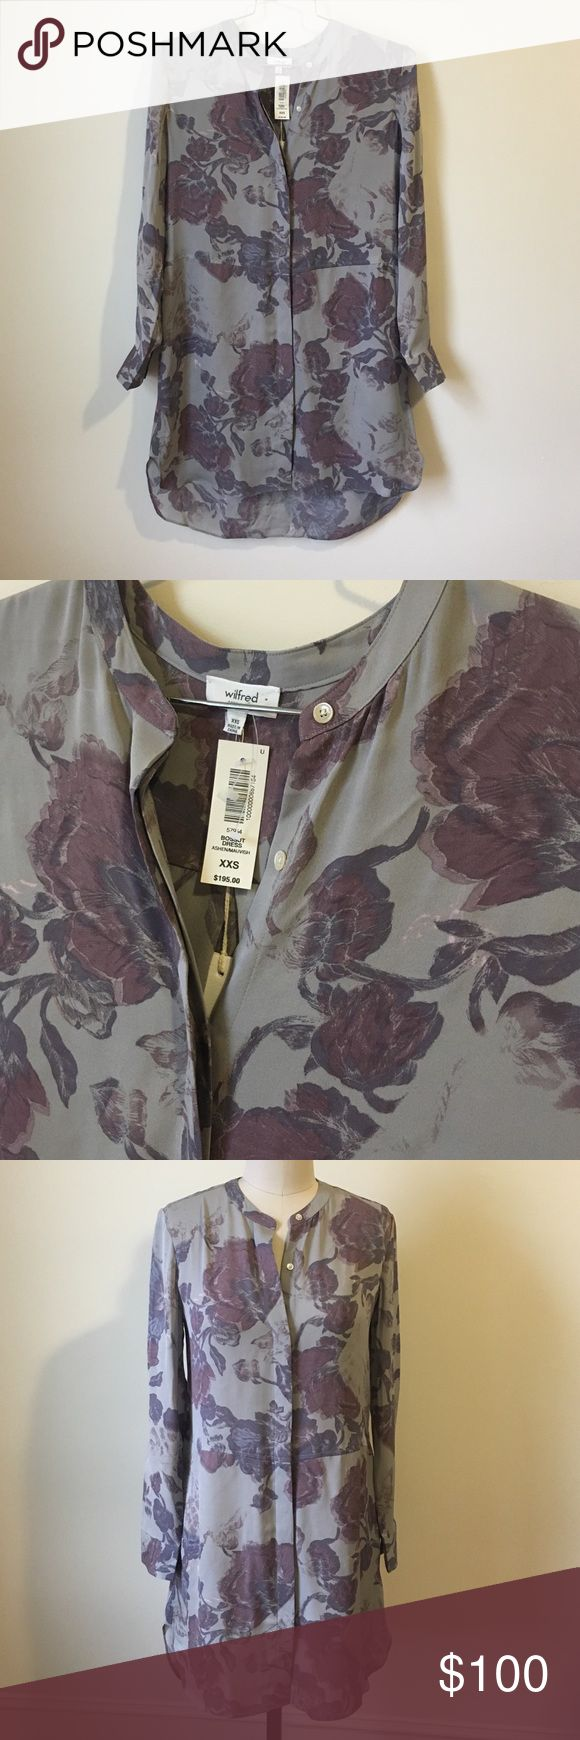 • Wilfred floral 100% silk dress size XXS-S• Used once!! Loose fitting can fit up to size S. 0-4. Bossut dress from Wilfred. Sold at aritzia. 195 retail price. 100% silk Aritzia Dresses